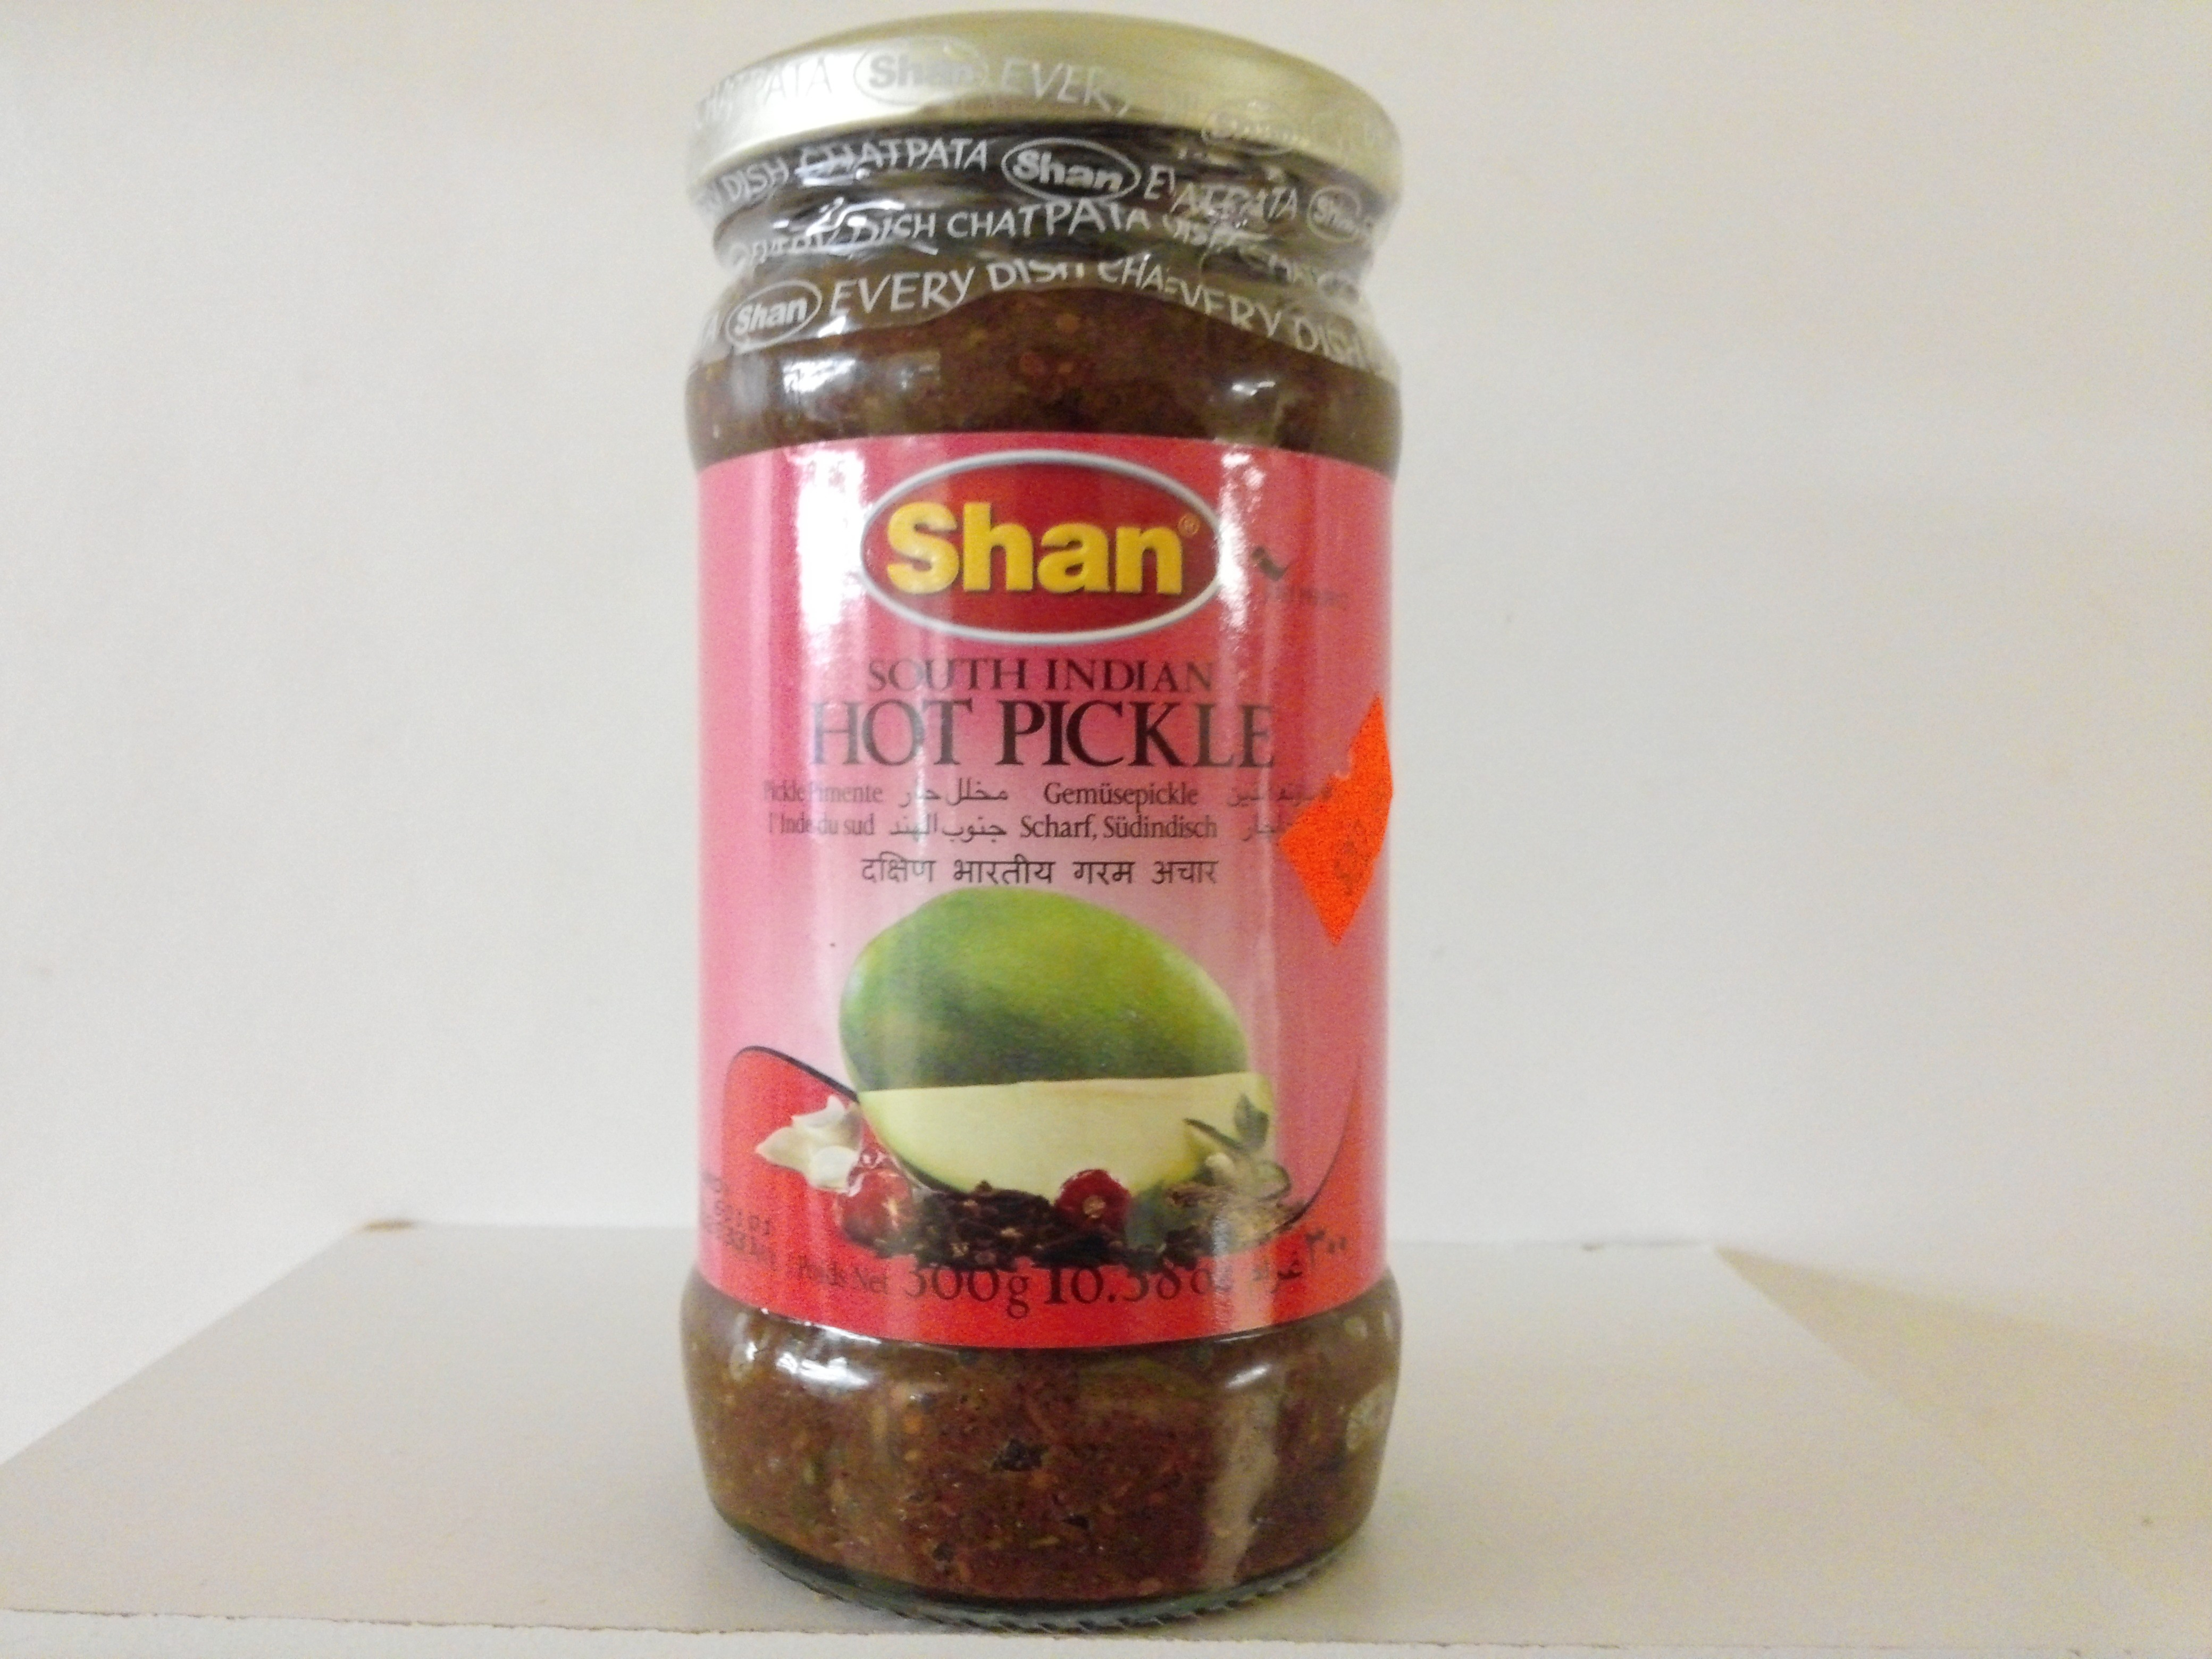 Shan South Indian Hot Pickle 300 grm